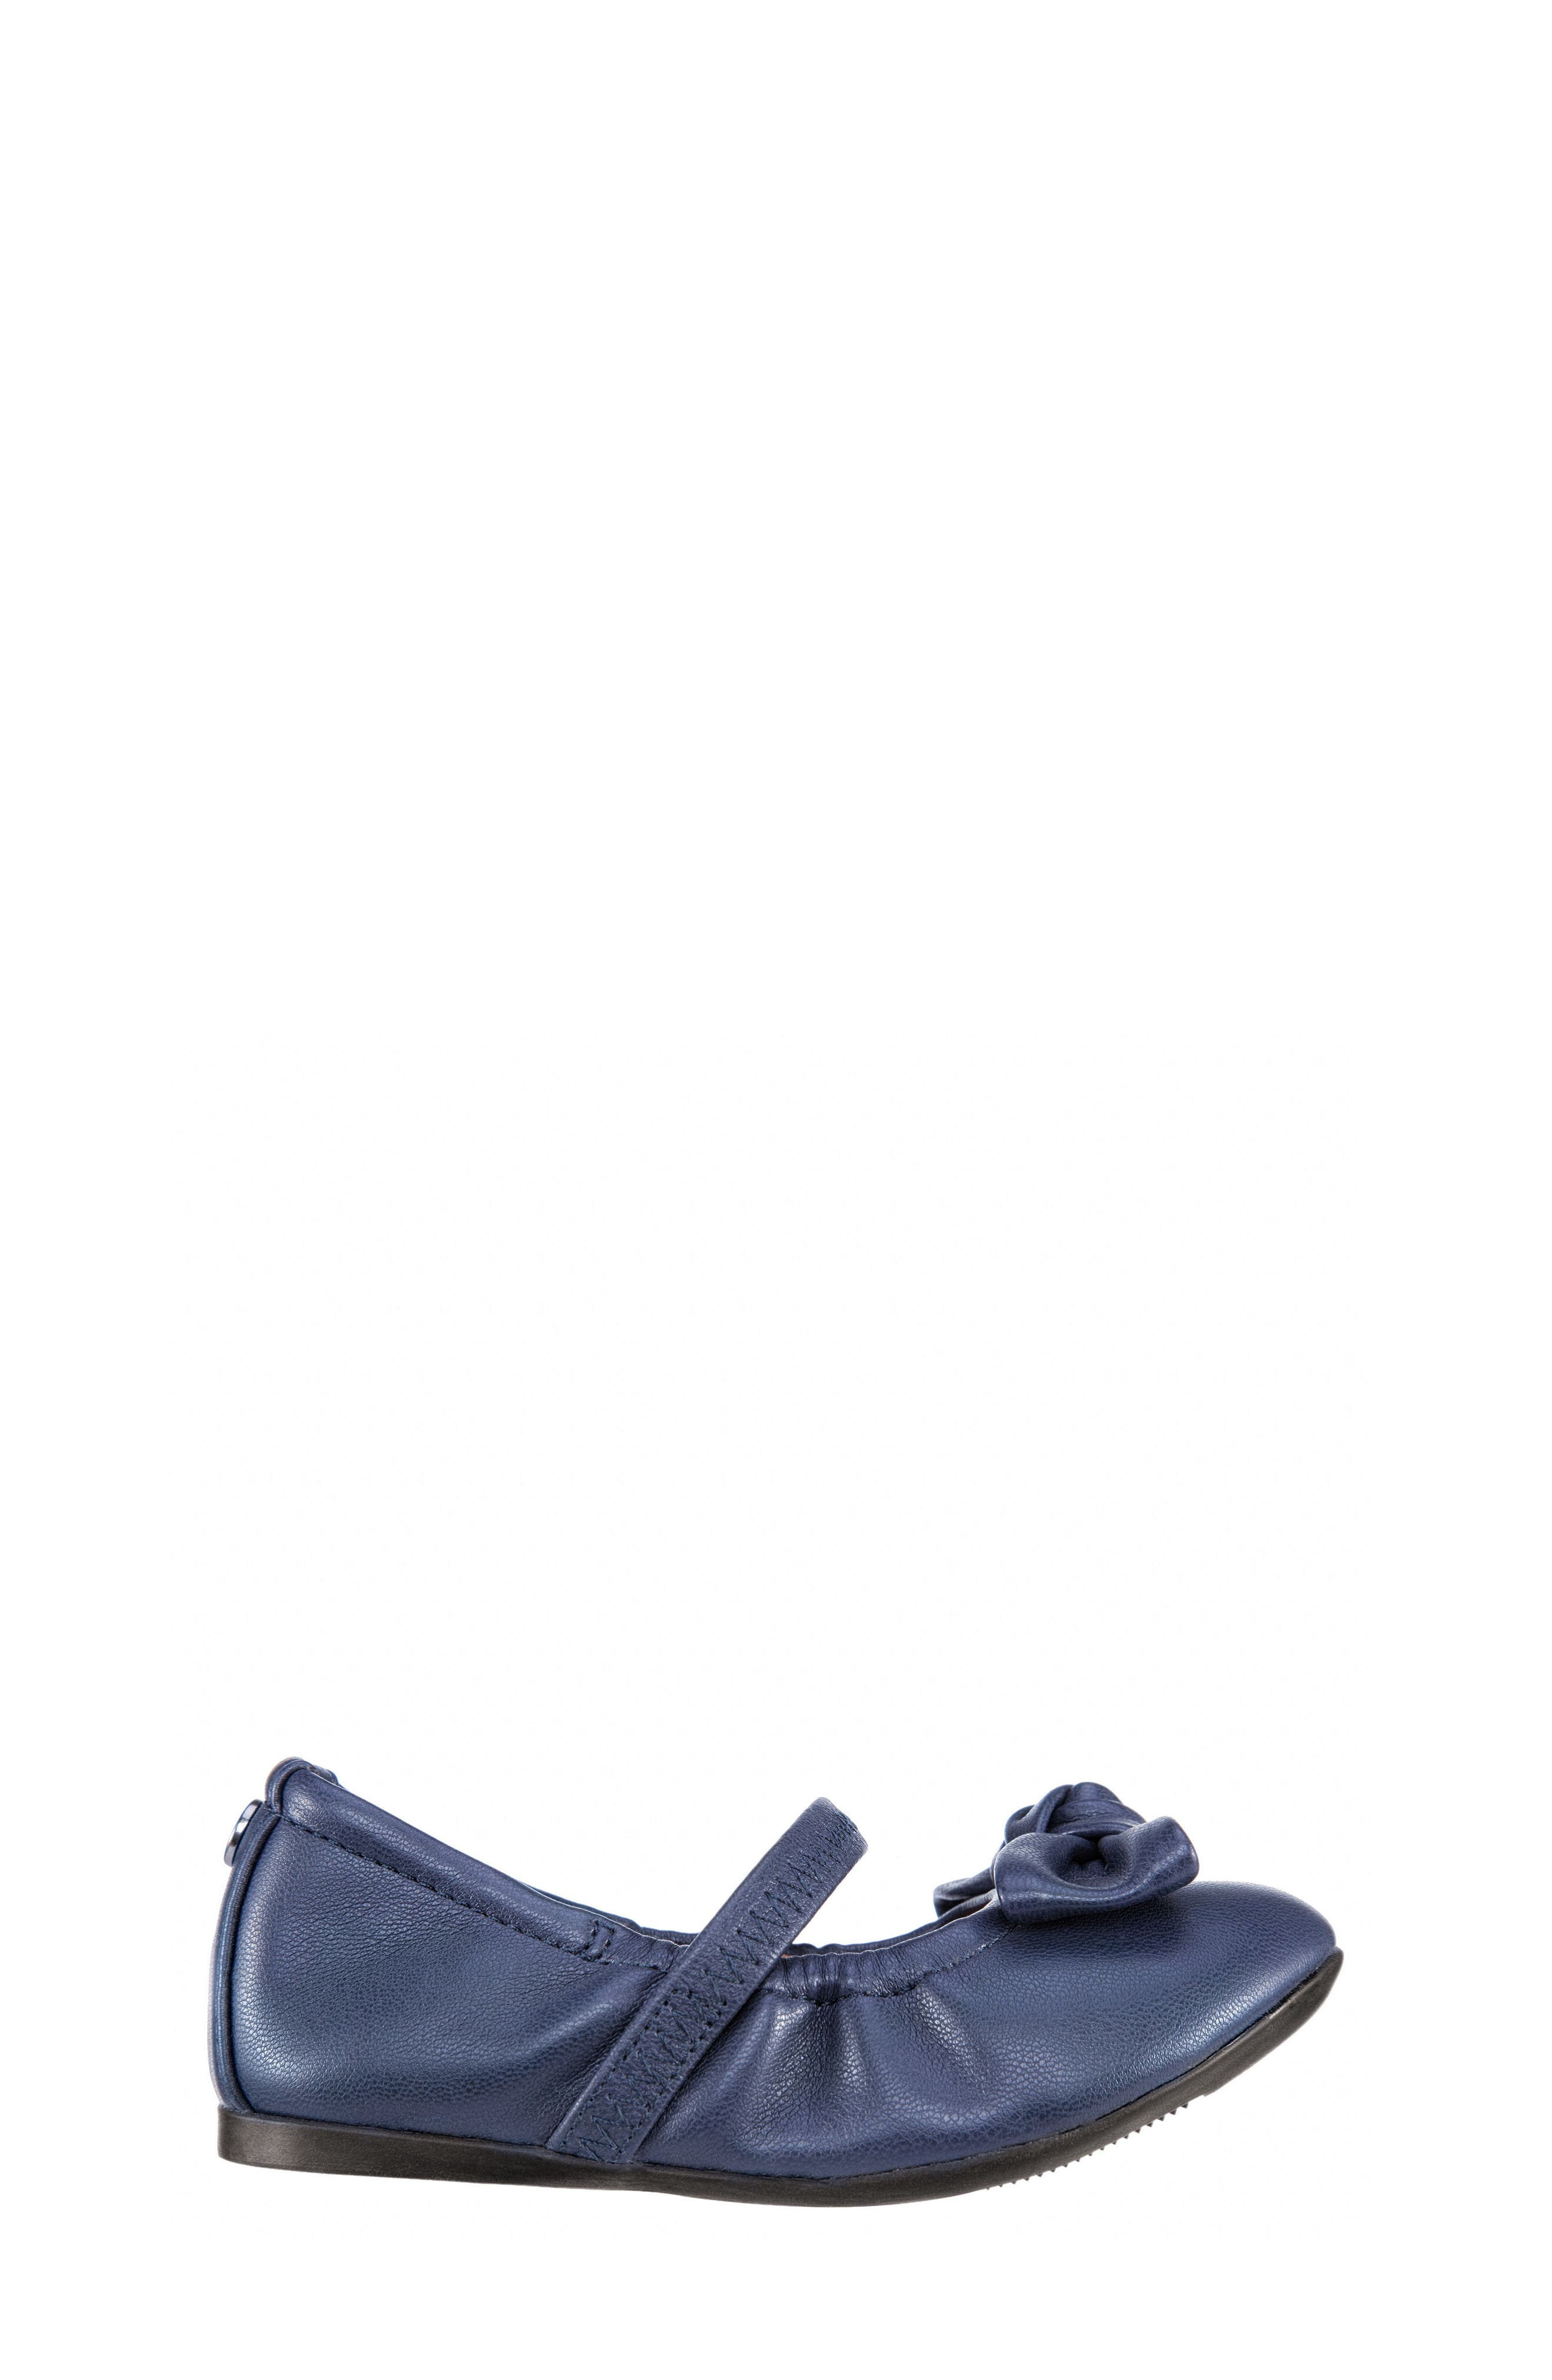 Karla Bow Ballet Flat,                             Alternate thumbnail 3, color,                             Navy Smooth Blue